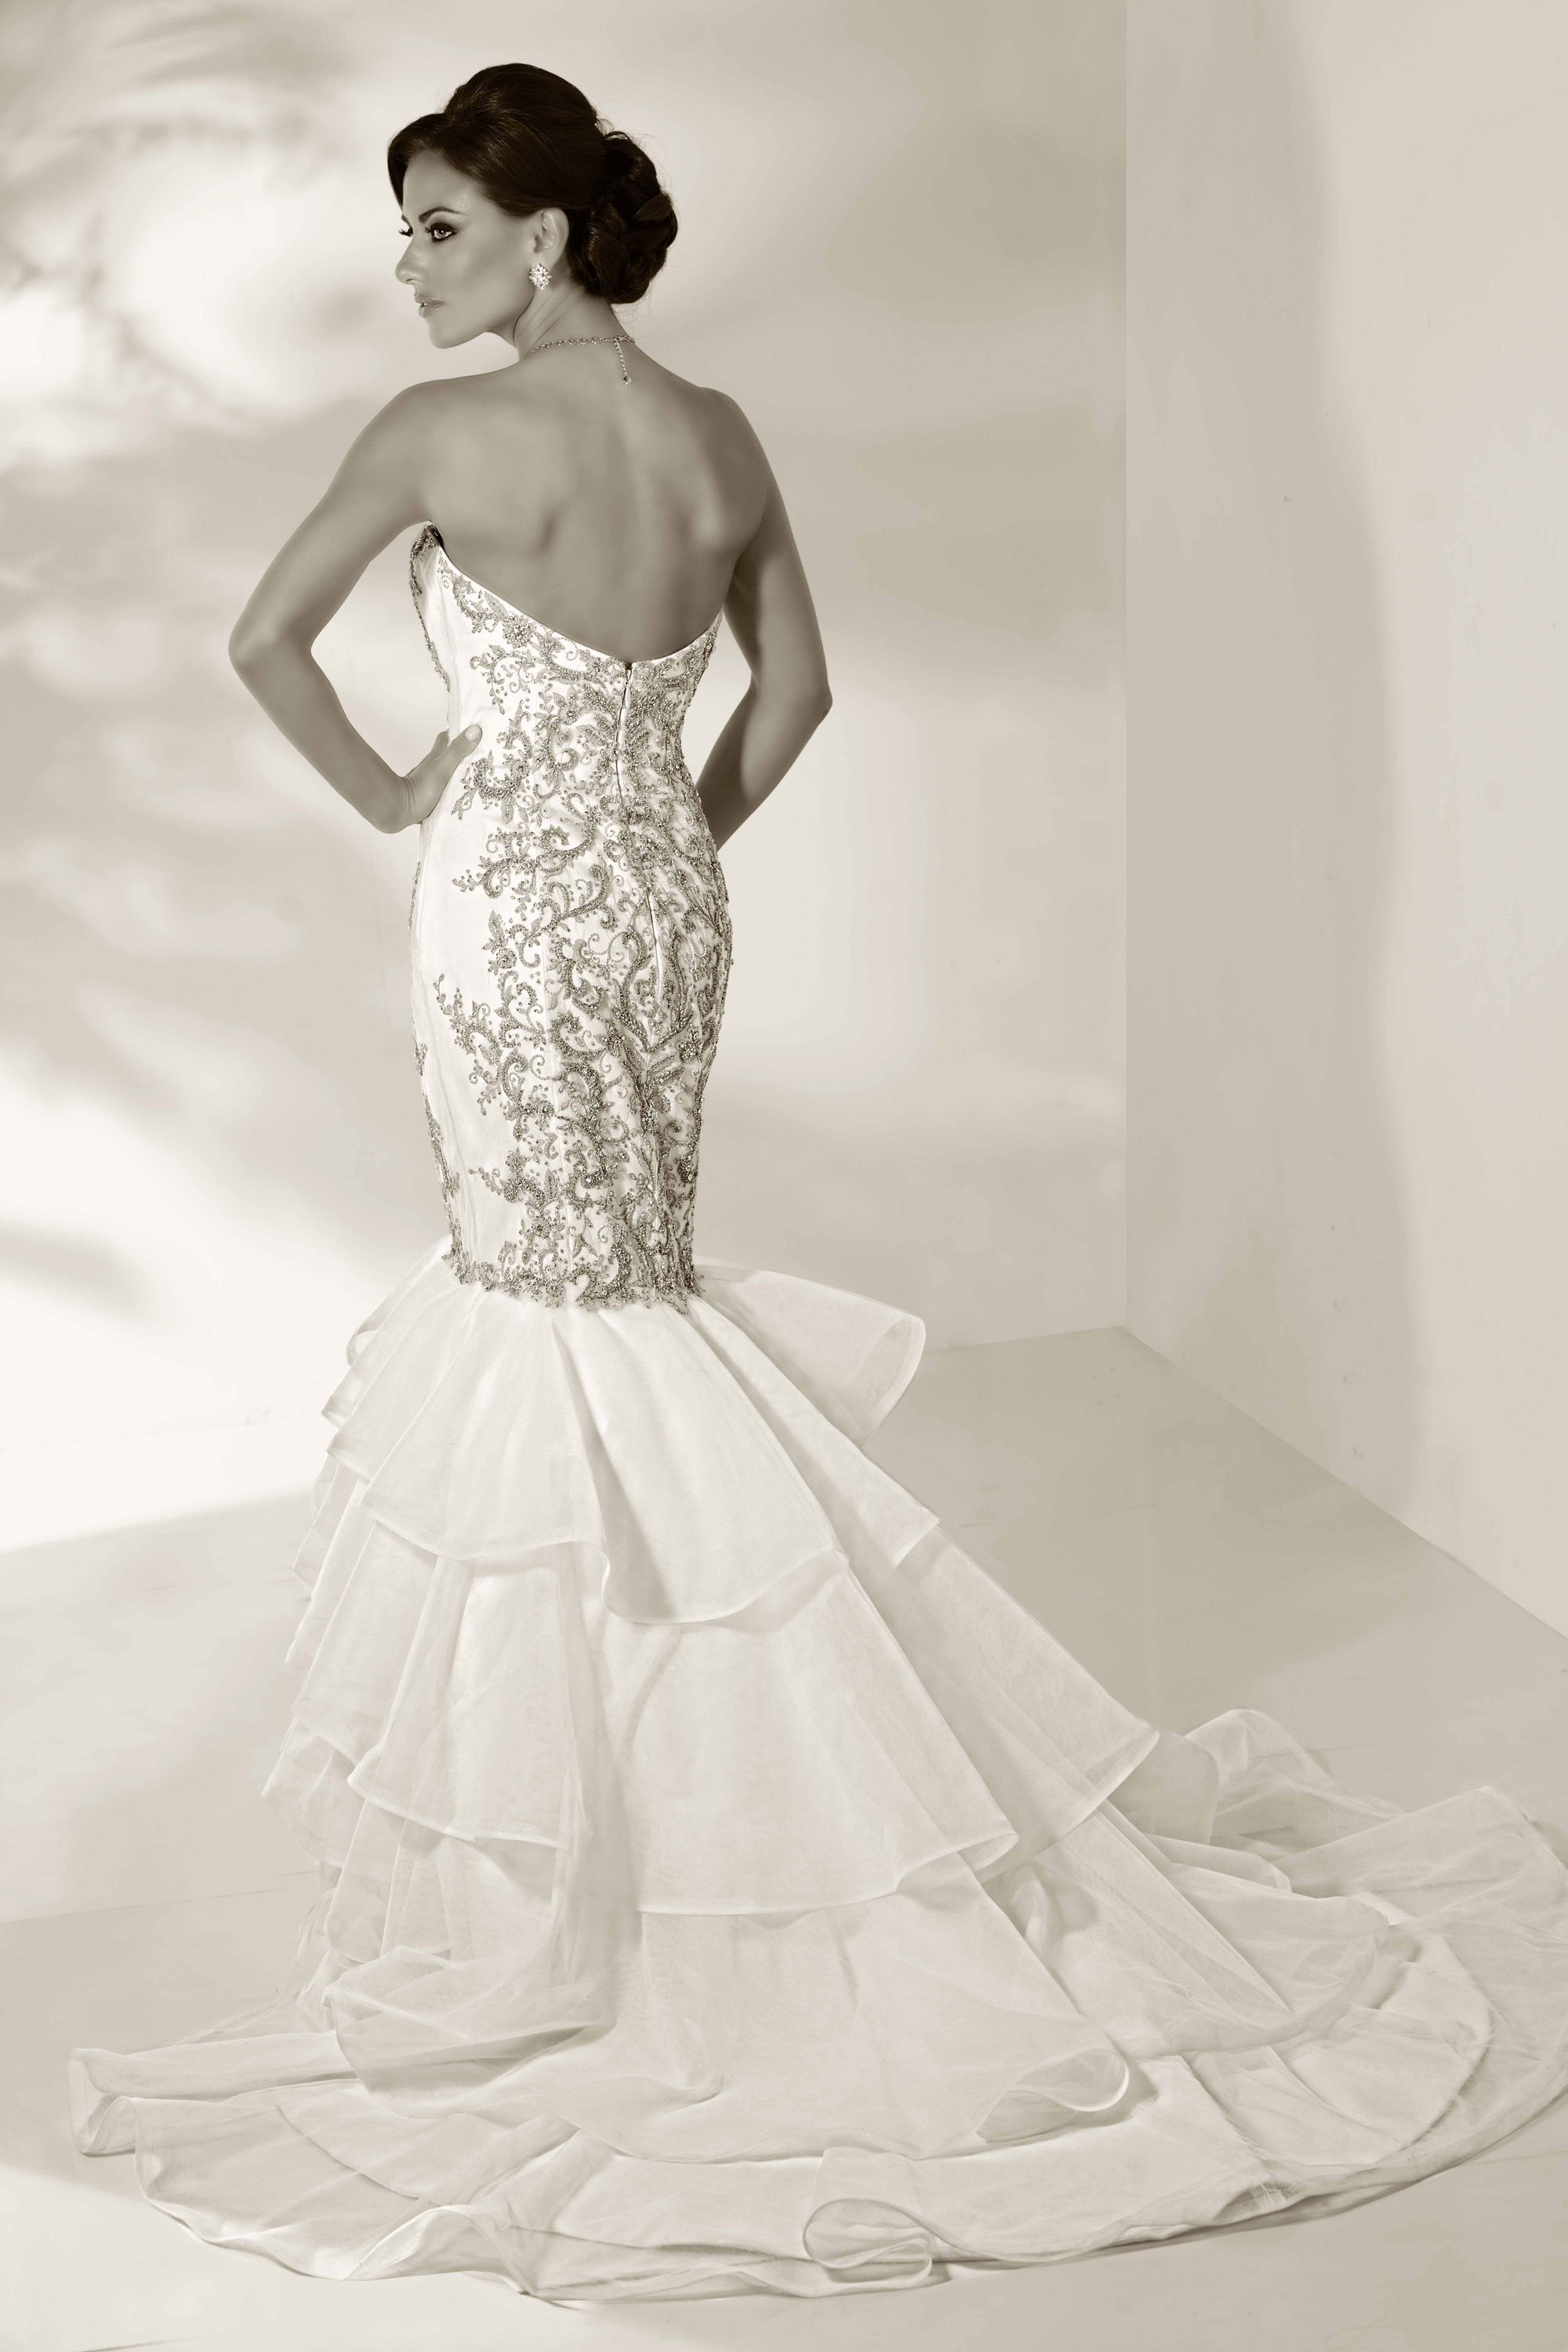 cristiano-lucci-wedding-dresses-11-01052014